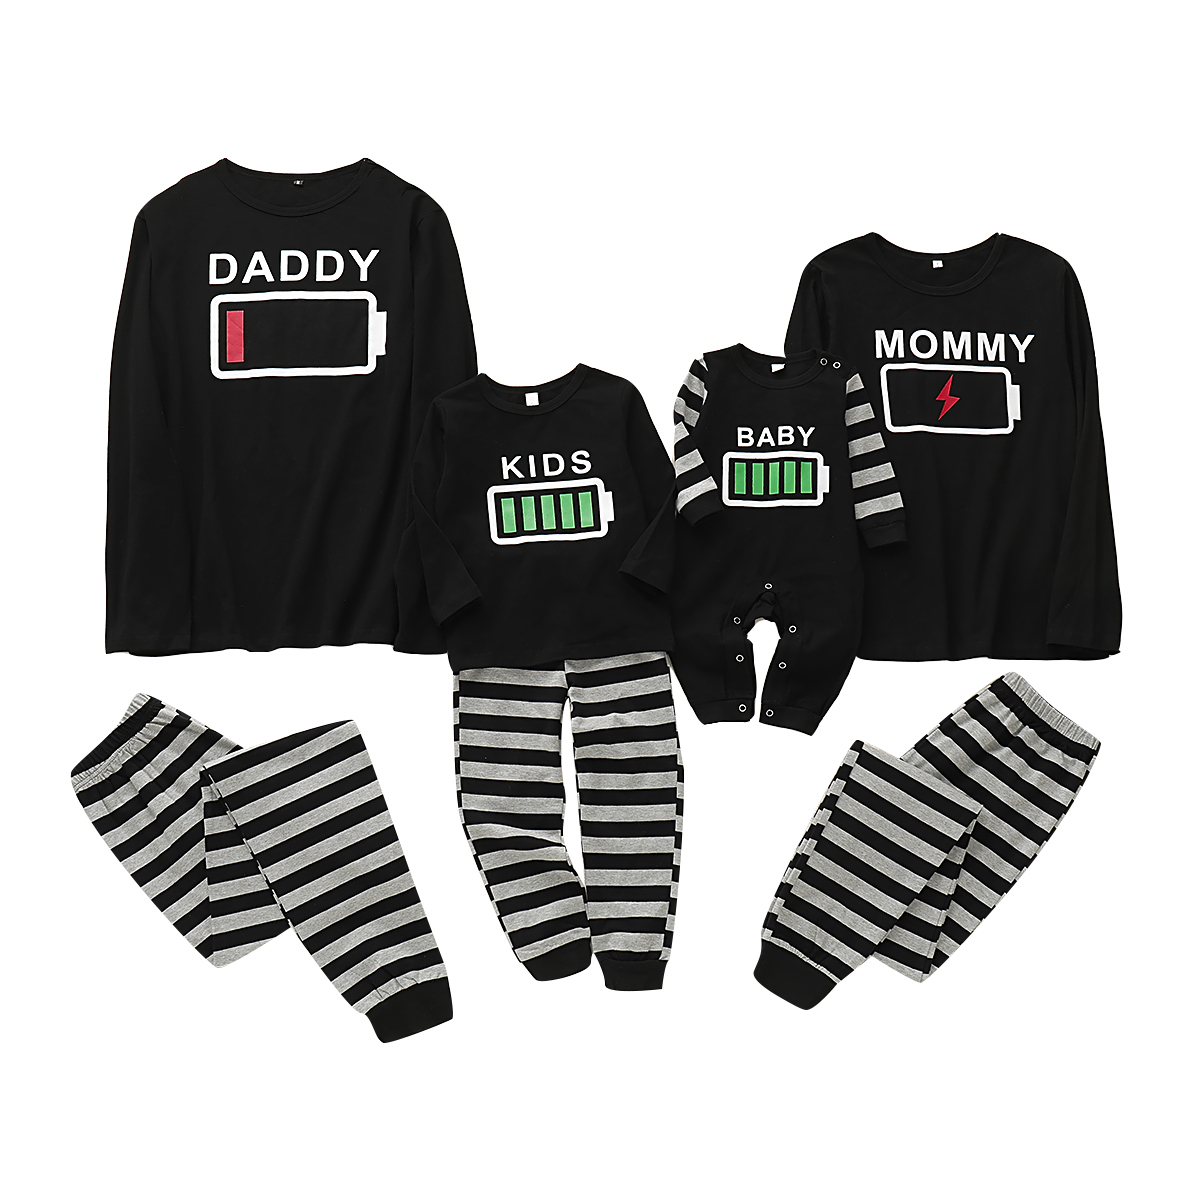 Puseky Family Pajamas Set Battery Print Nightwear Sleepwear Mommy And Me Clothes Daddy And Me Clothes Family Look